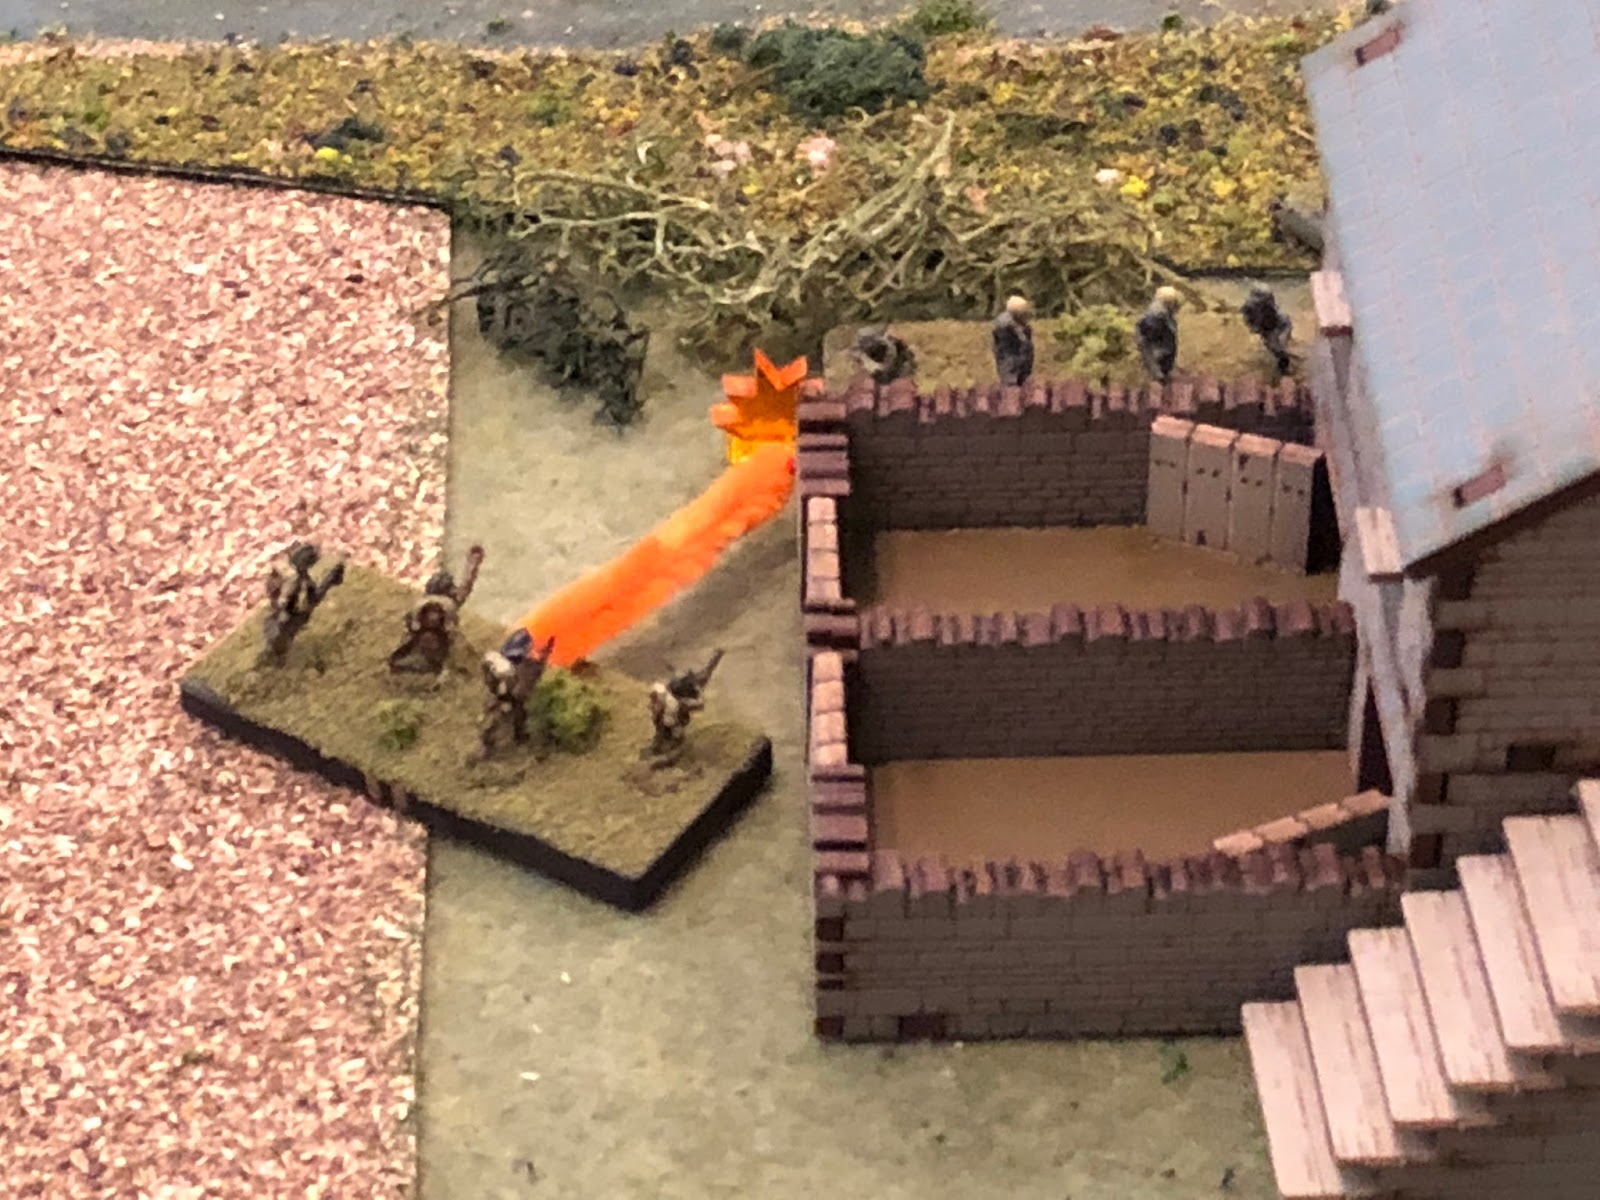 1st Squad pops up and cuts loose with a brutal fusillade at point-blank range on the German engineers...